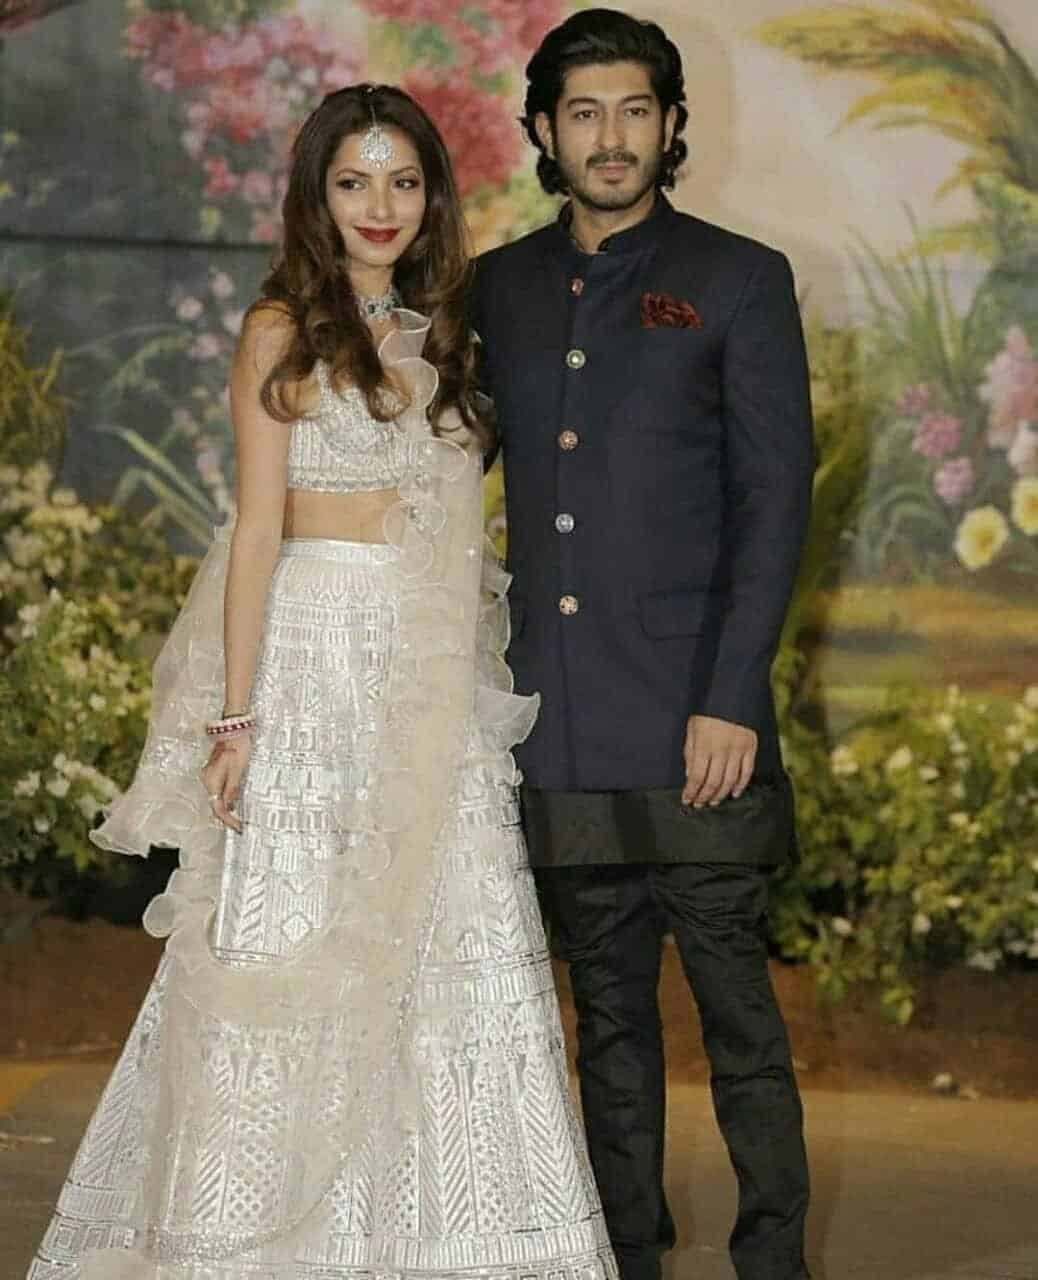 26-2 Sonam Kapoor Wedding Pics - Engagement and Complete Wedding Pictures